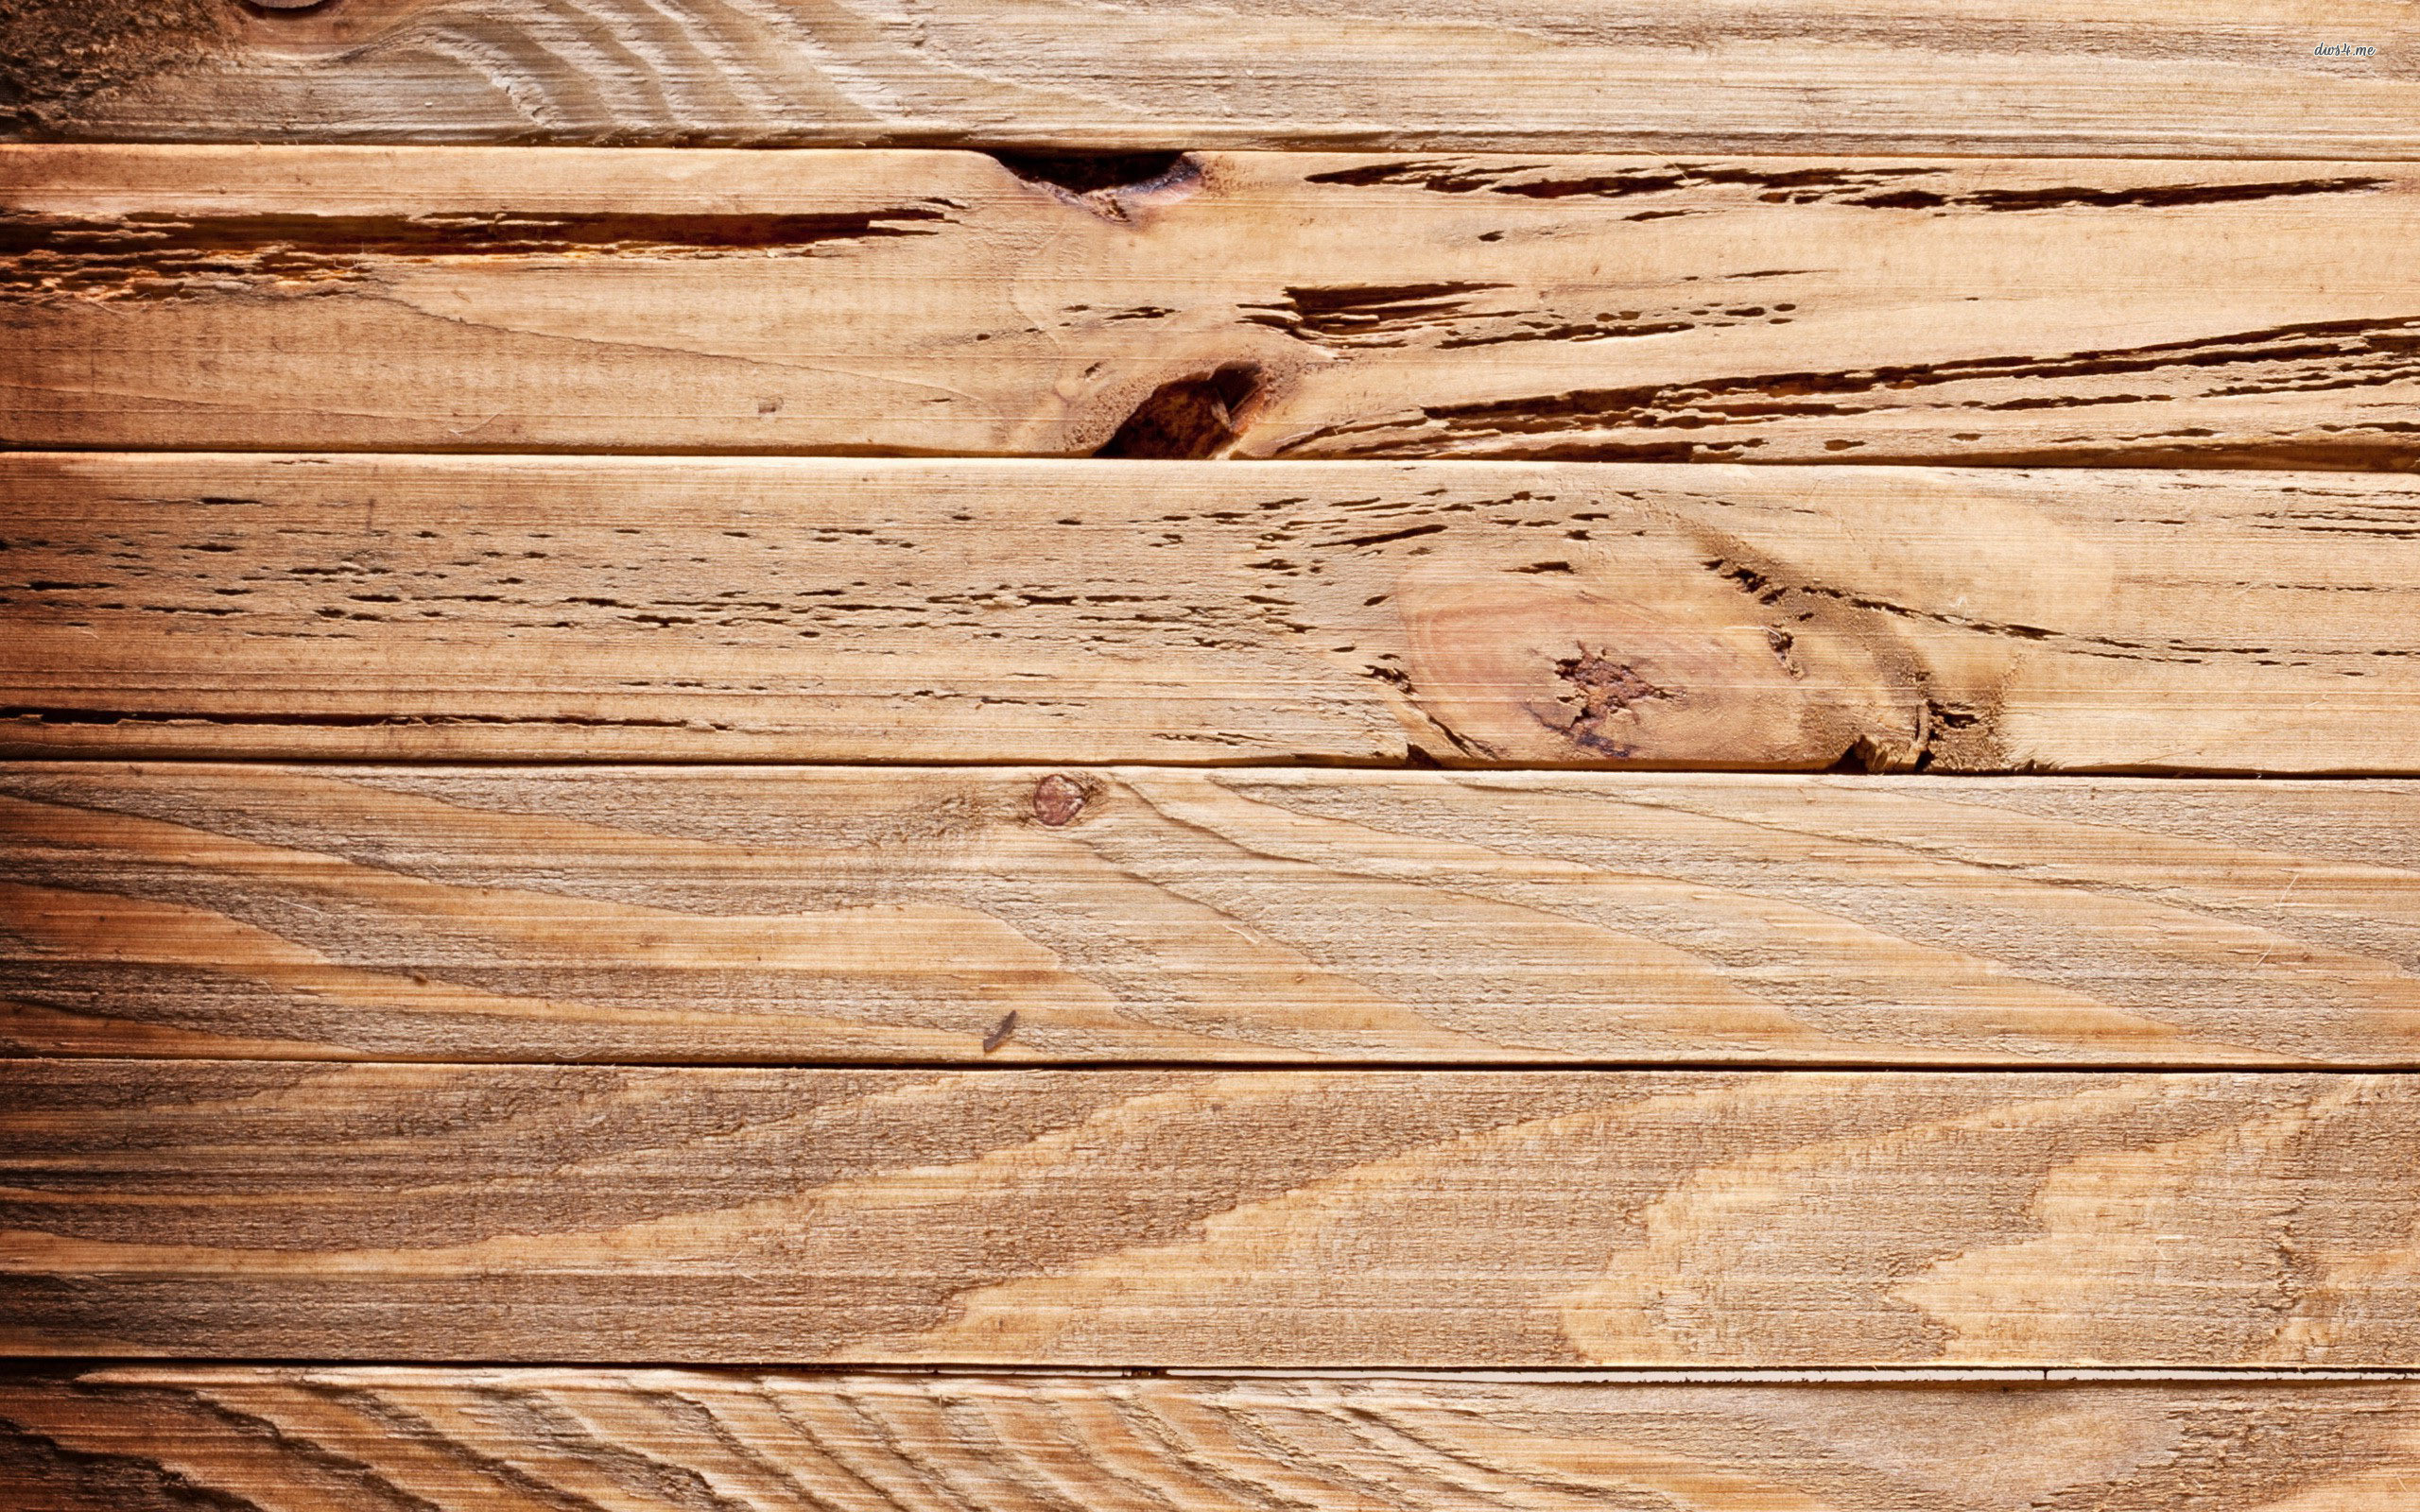 2560x1600 Wood-texture-picture-abstract-wallpaper-HD